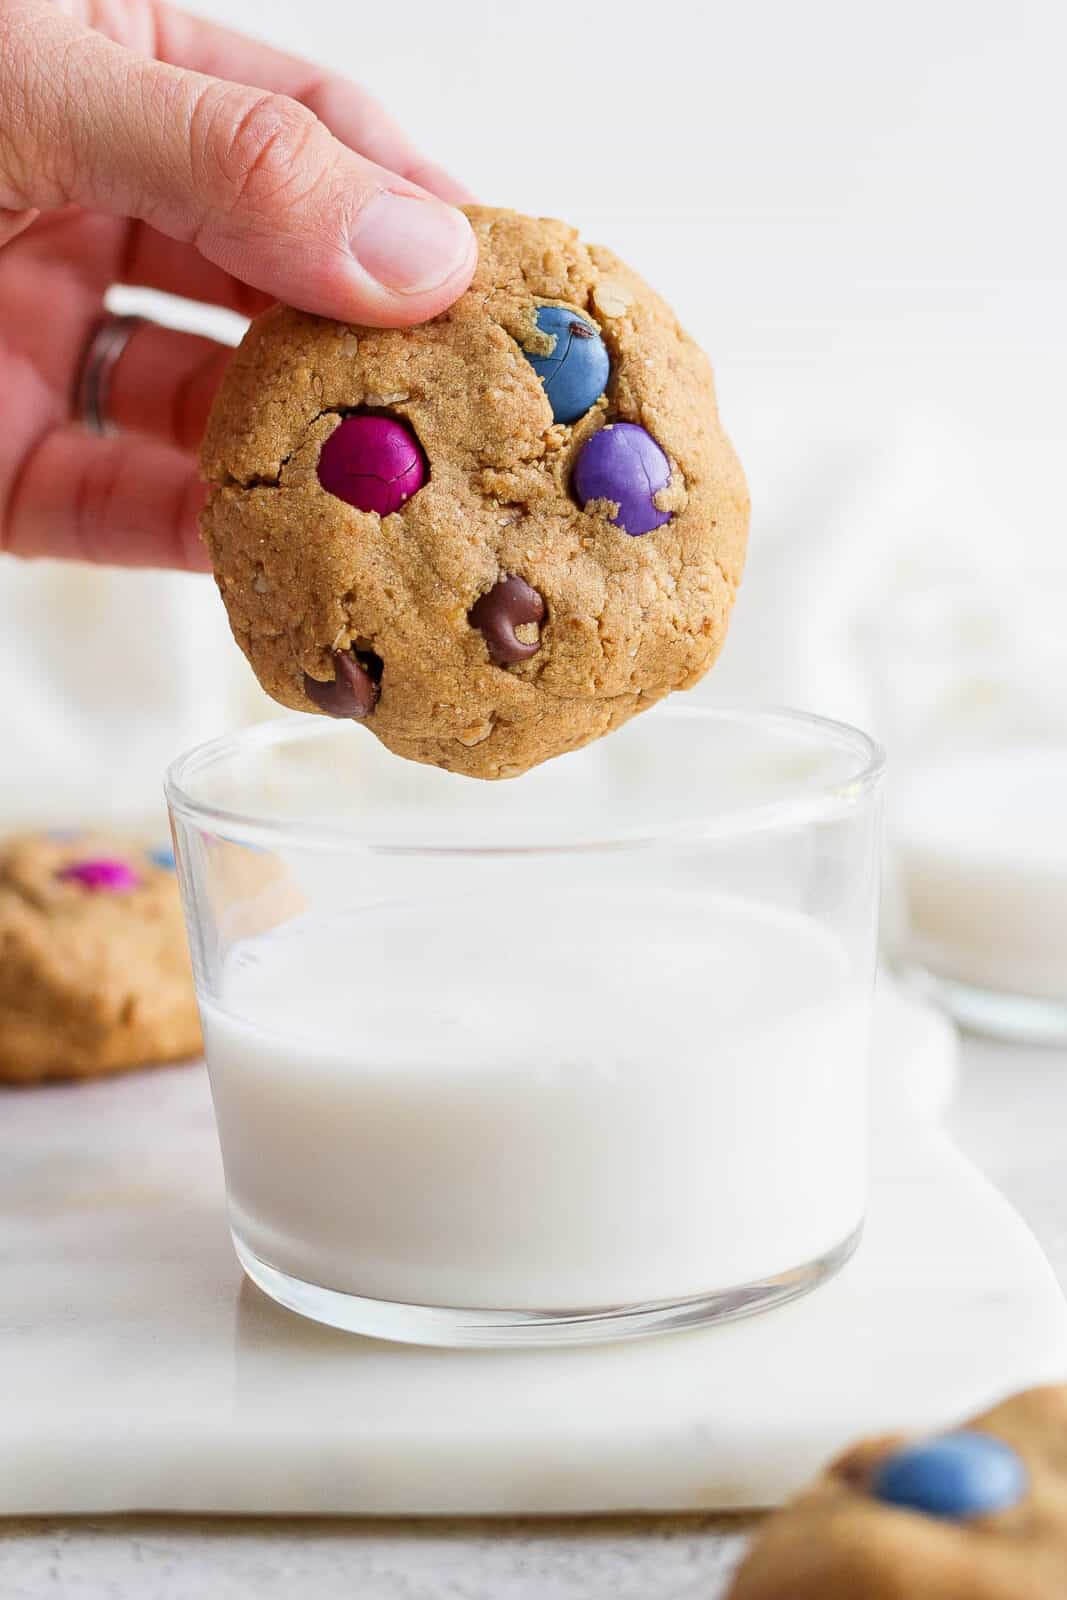 Someone about to dip a monster cookie in a cup of milk.